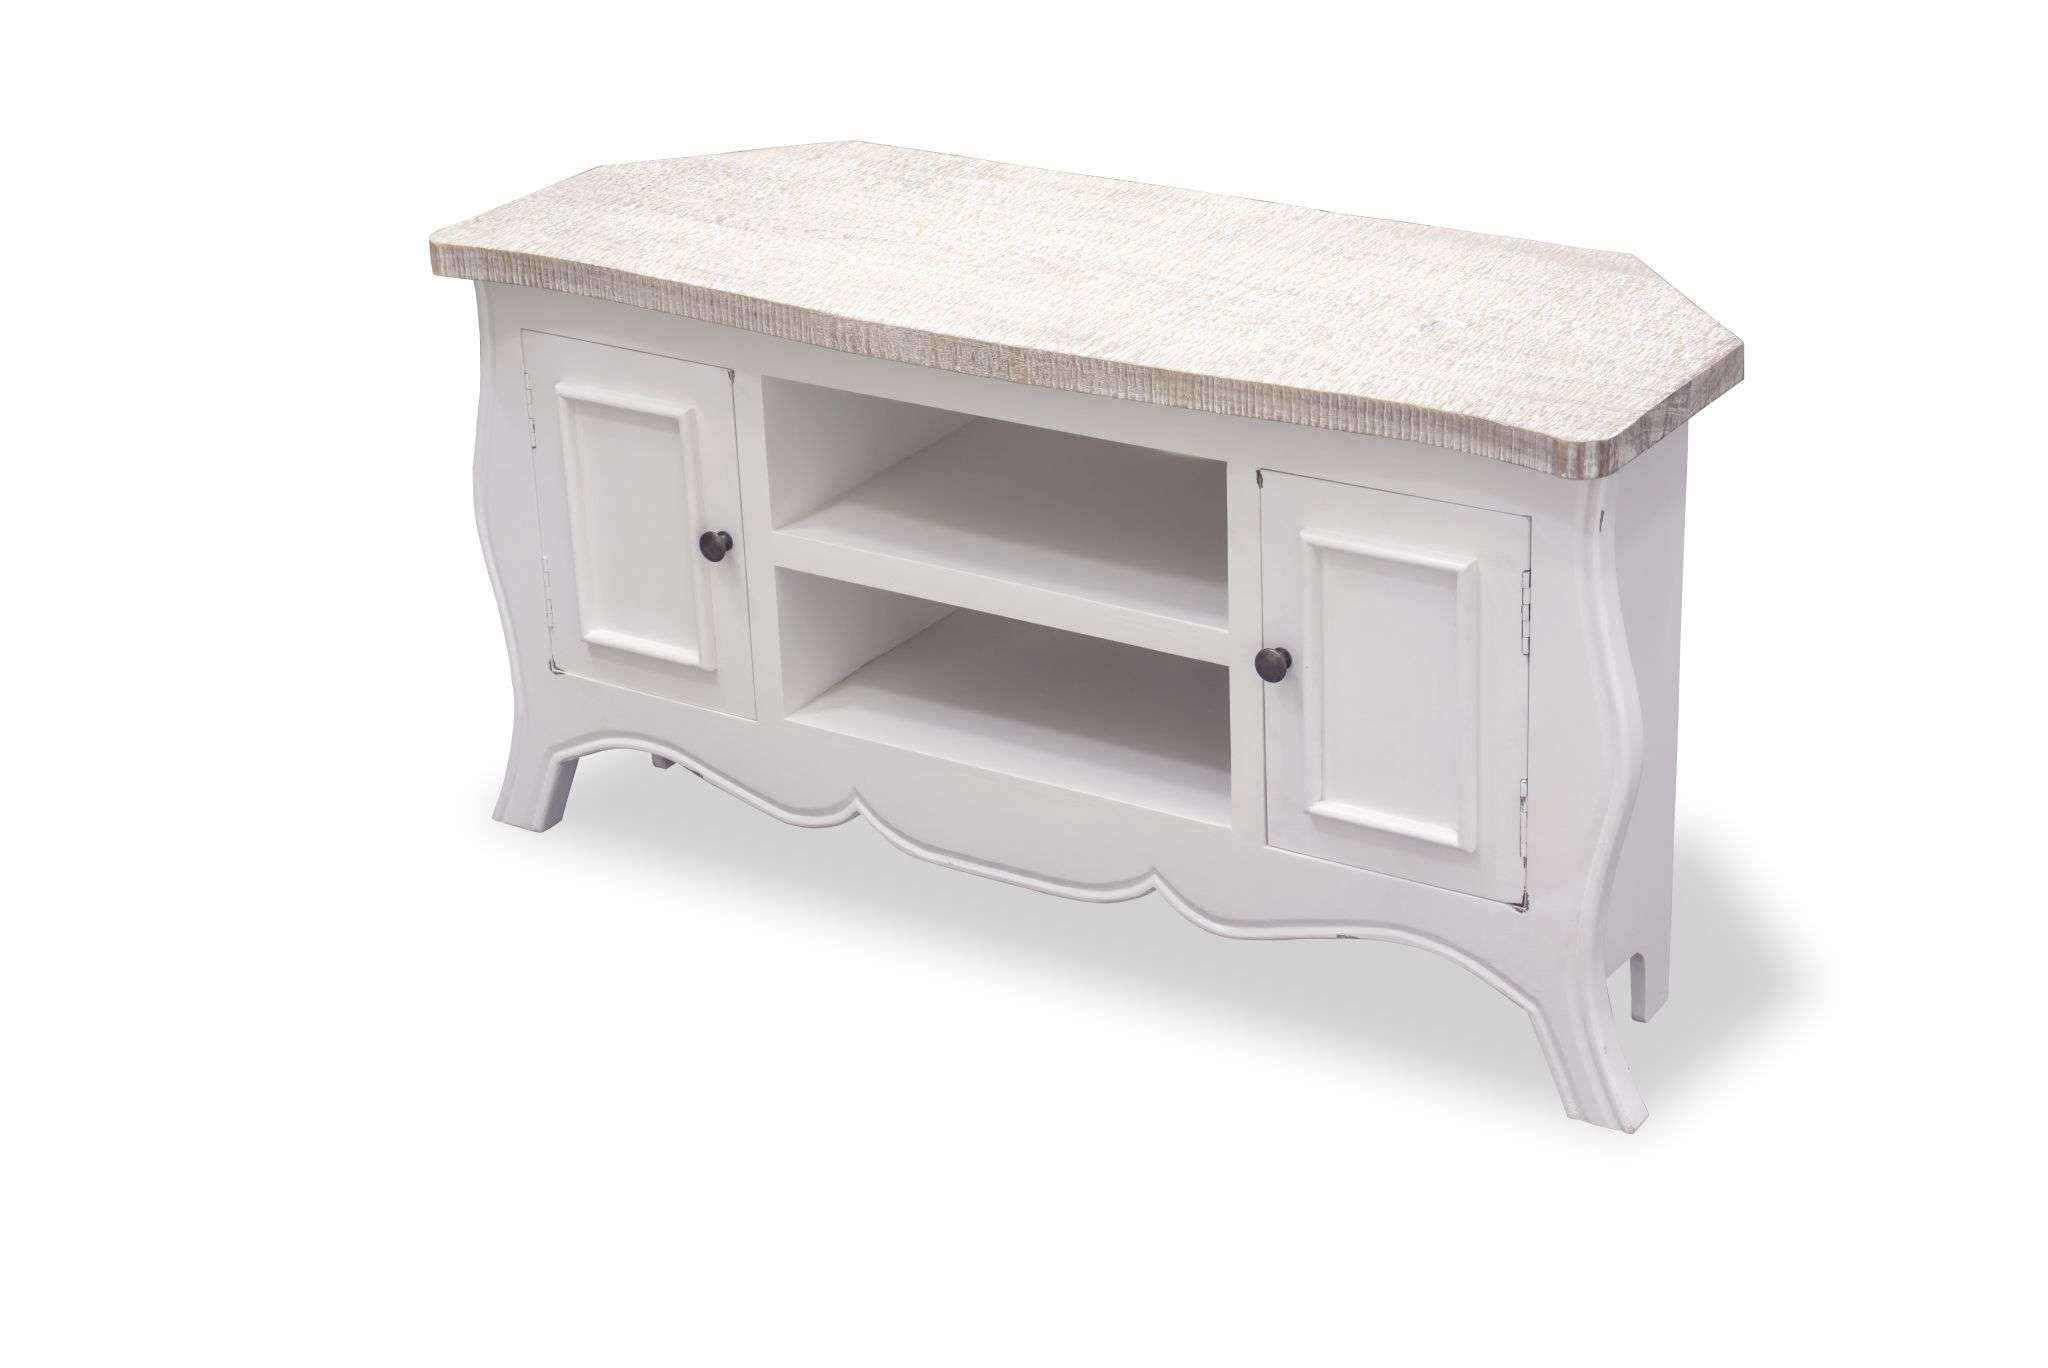 Painted Cottonwood Shabby Chic Corner Tv Cabinet 45570 P (2048 Intended For White Corner Tv Cabinets (View 9 of 20)